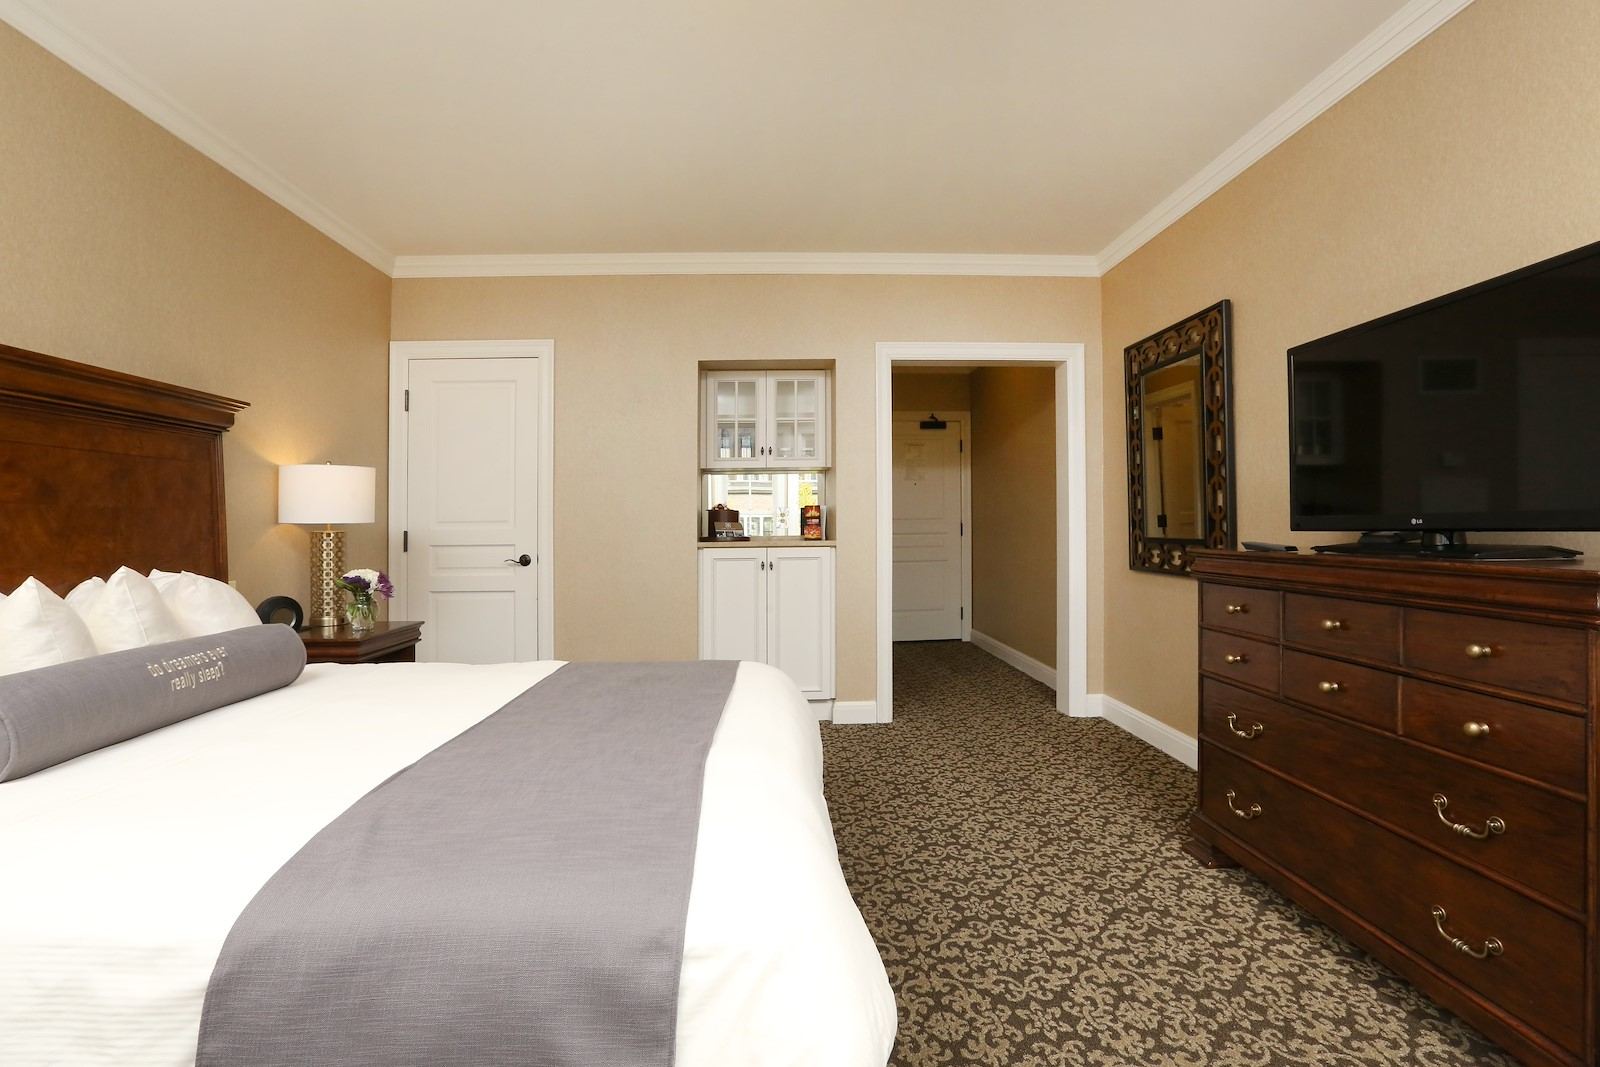 Royal Park's Hotel Room wiht a King-Sized Bed in Rochester Michigan